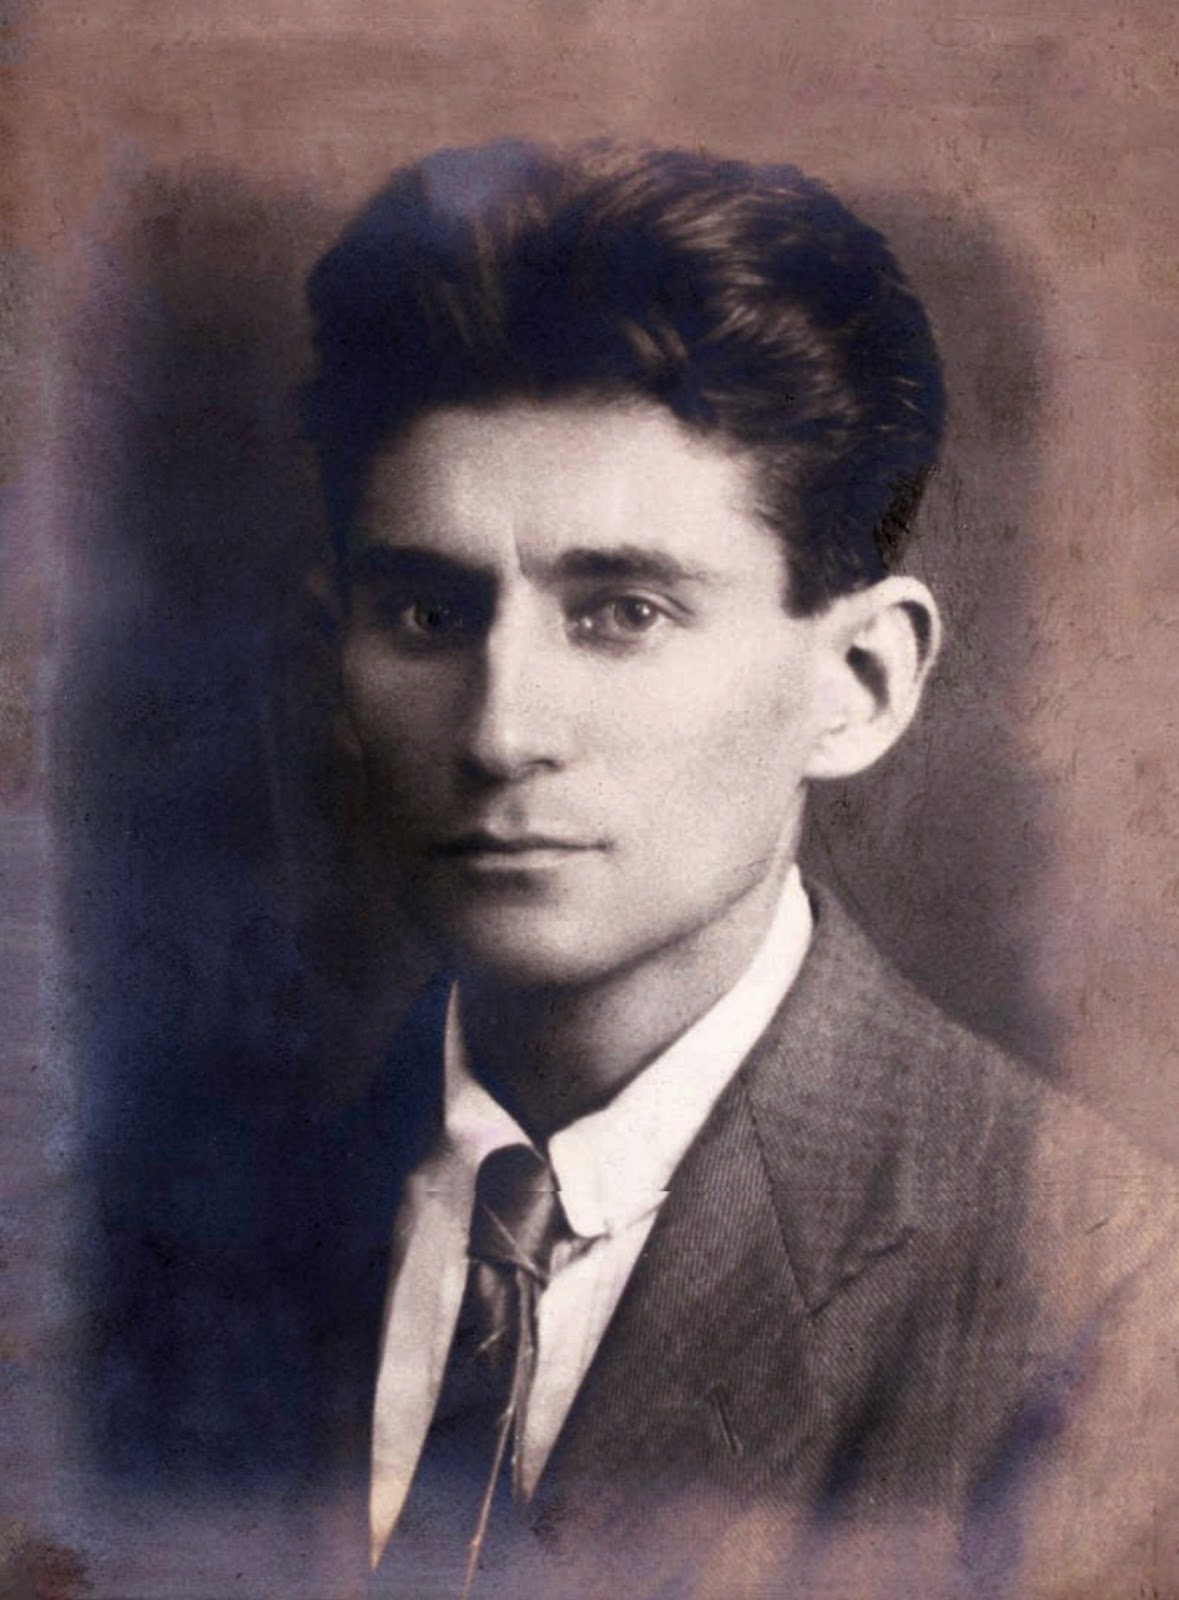 kafka and guilt Masuzawa t behind the law: staging of guilt in kafka via dürrenmatt journal of the american academy of religion 1992 mar60(1):35-55 available from, doi: 101093.